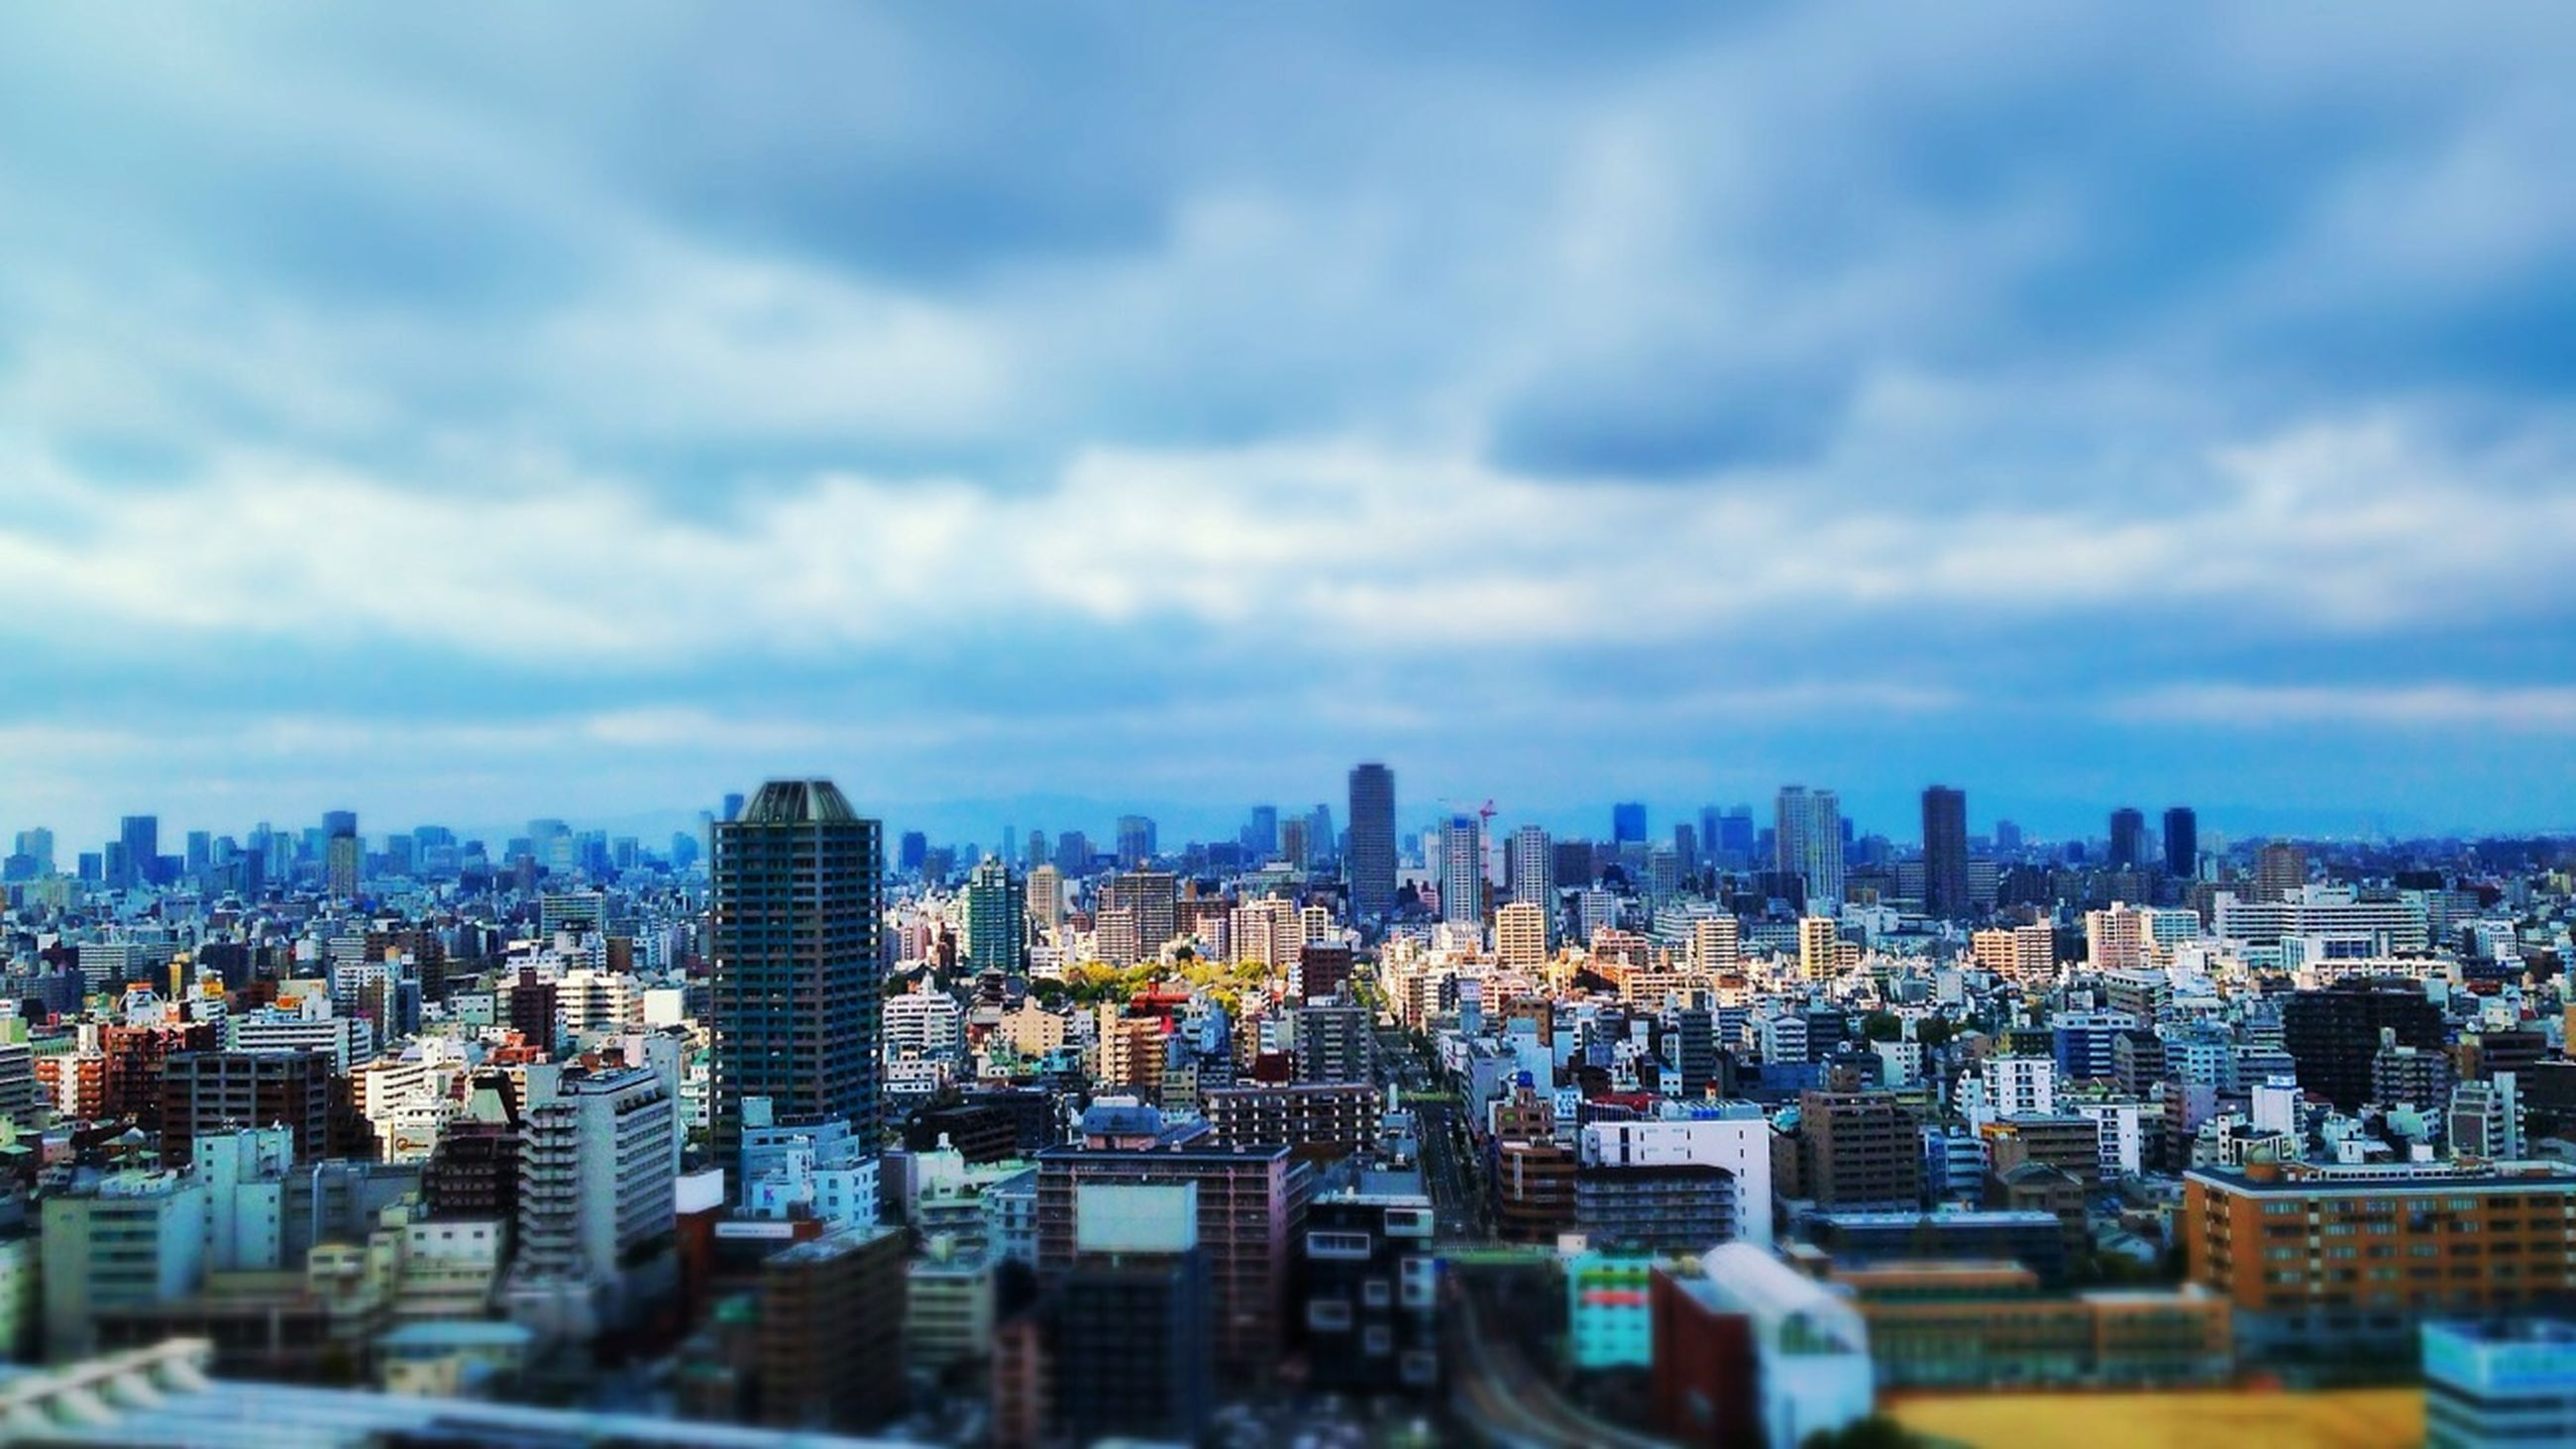 cityscape, building exterior, city, architecture, built structure, sky, crowded, skyscraper, cloud - sky, modern, residential district, residential building, cloudy, tower, cloud, tall - high, office building, high angle view, urban skyline, residential structure